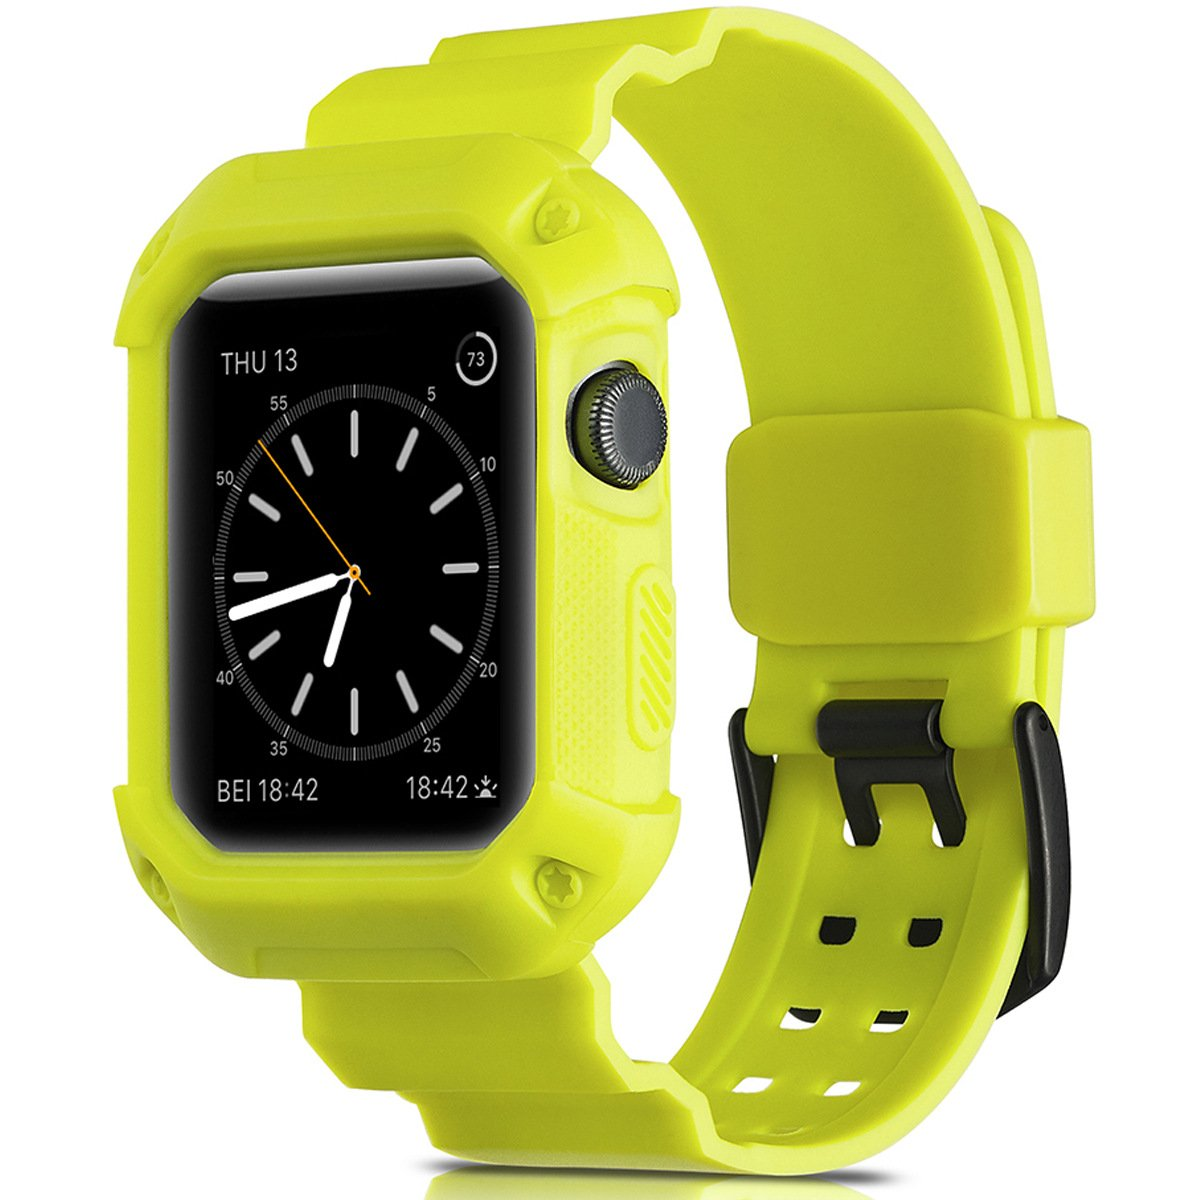 Watruer Apple Watch Bands 38mm with case, Rugged Armor Protective Bumper Case Strap Replacement for Active Style Men and Women - Yellow